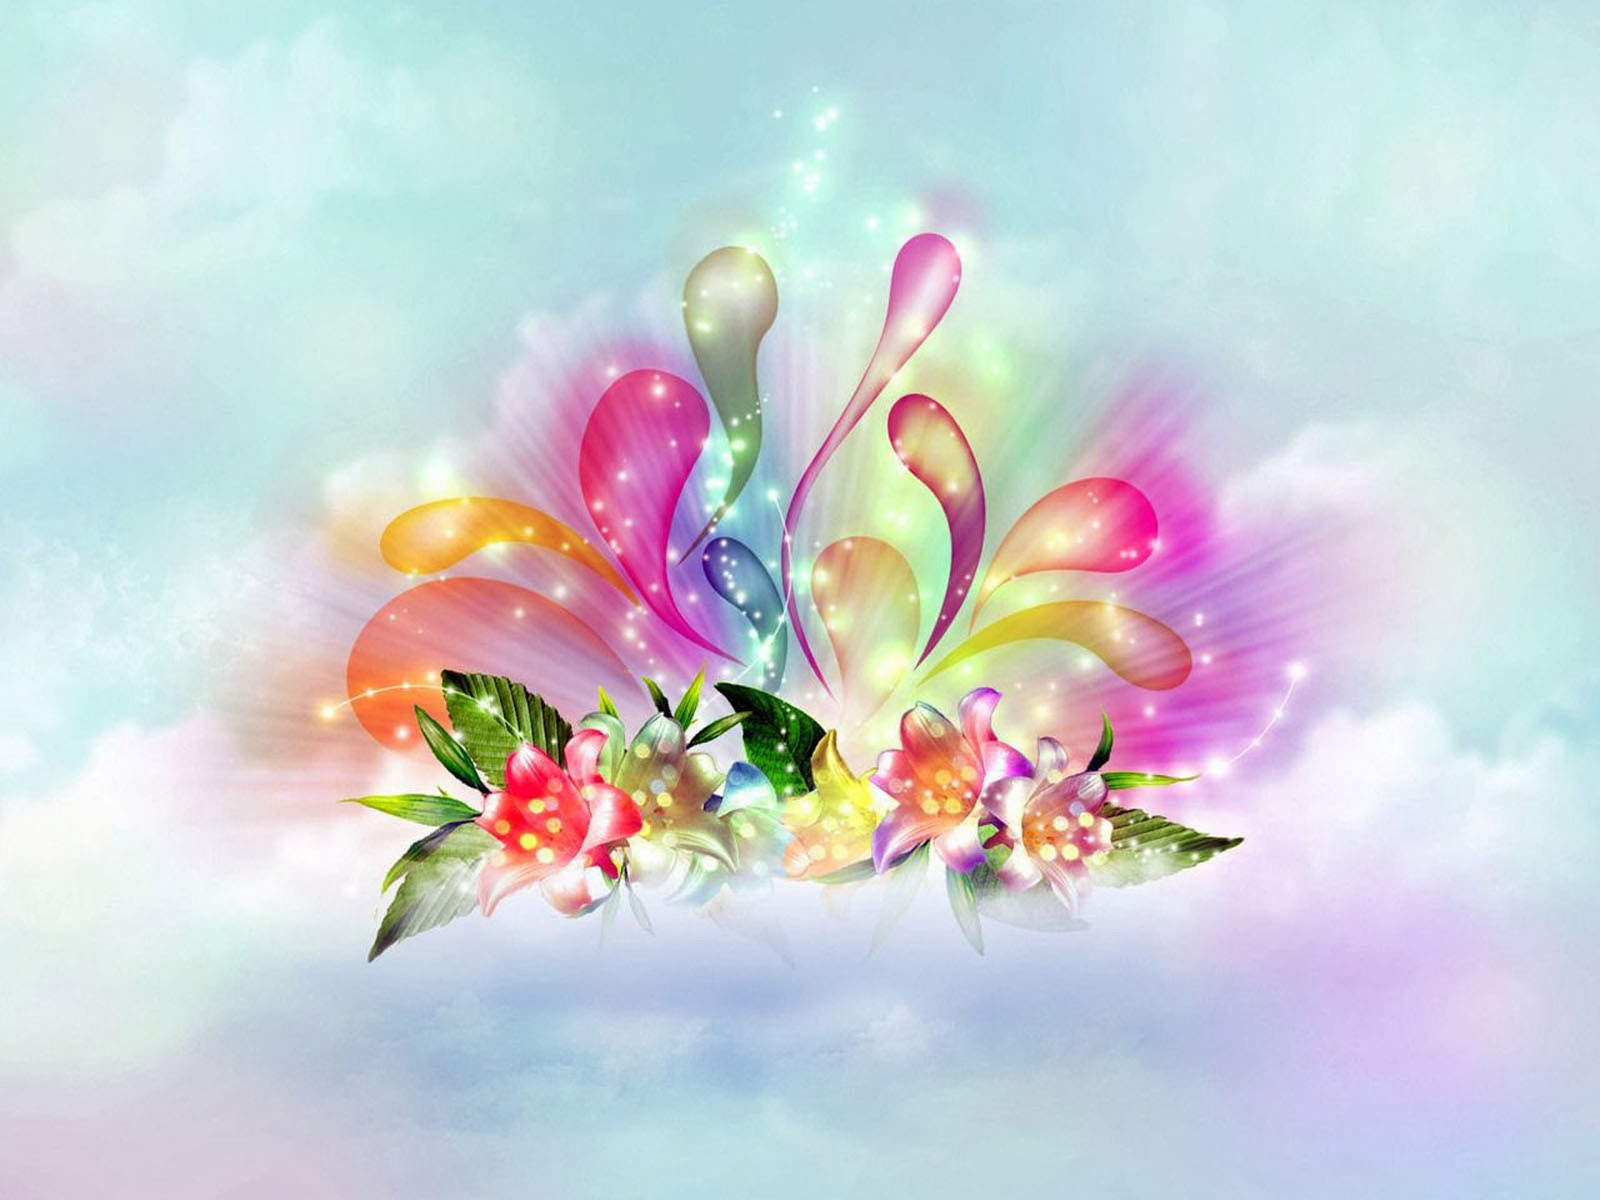 3D Flowers Wallpapers - totalinfo90